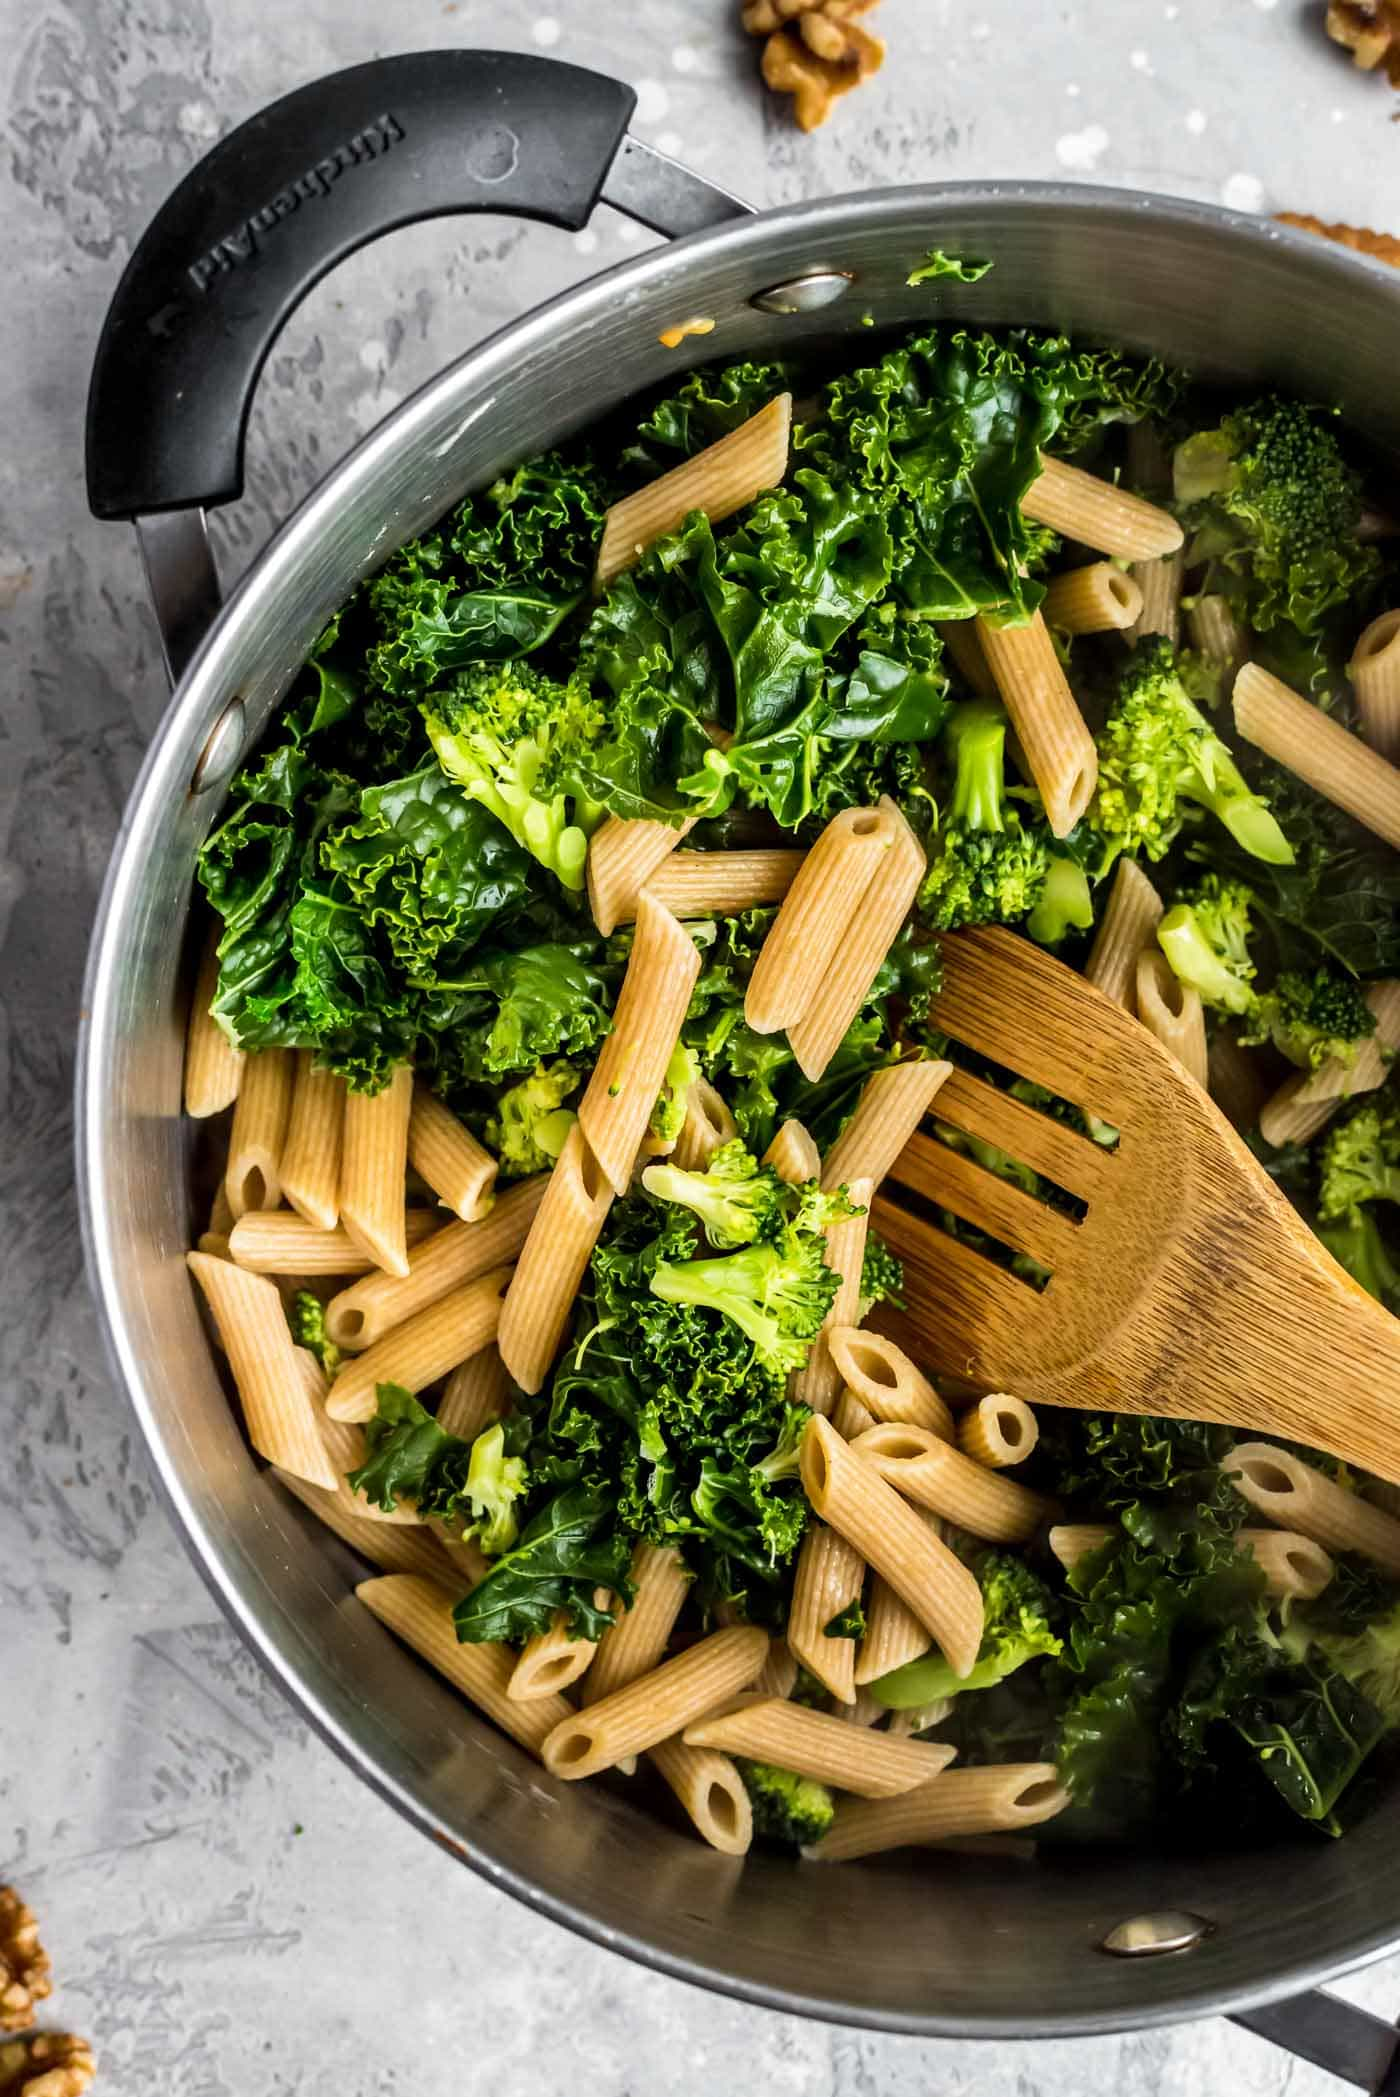 Vegan Broccoli and Kale Red Pepper Pesto Pasta